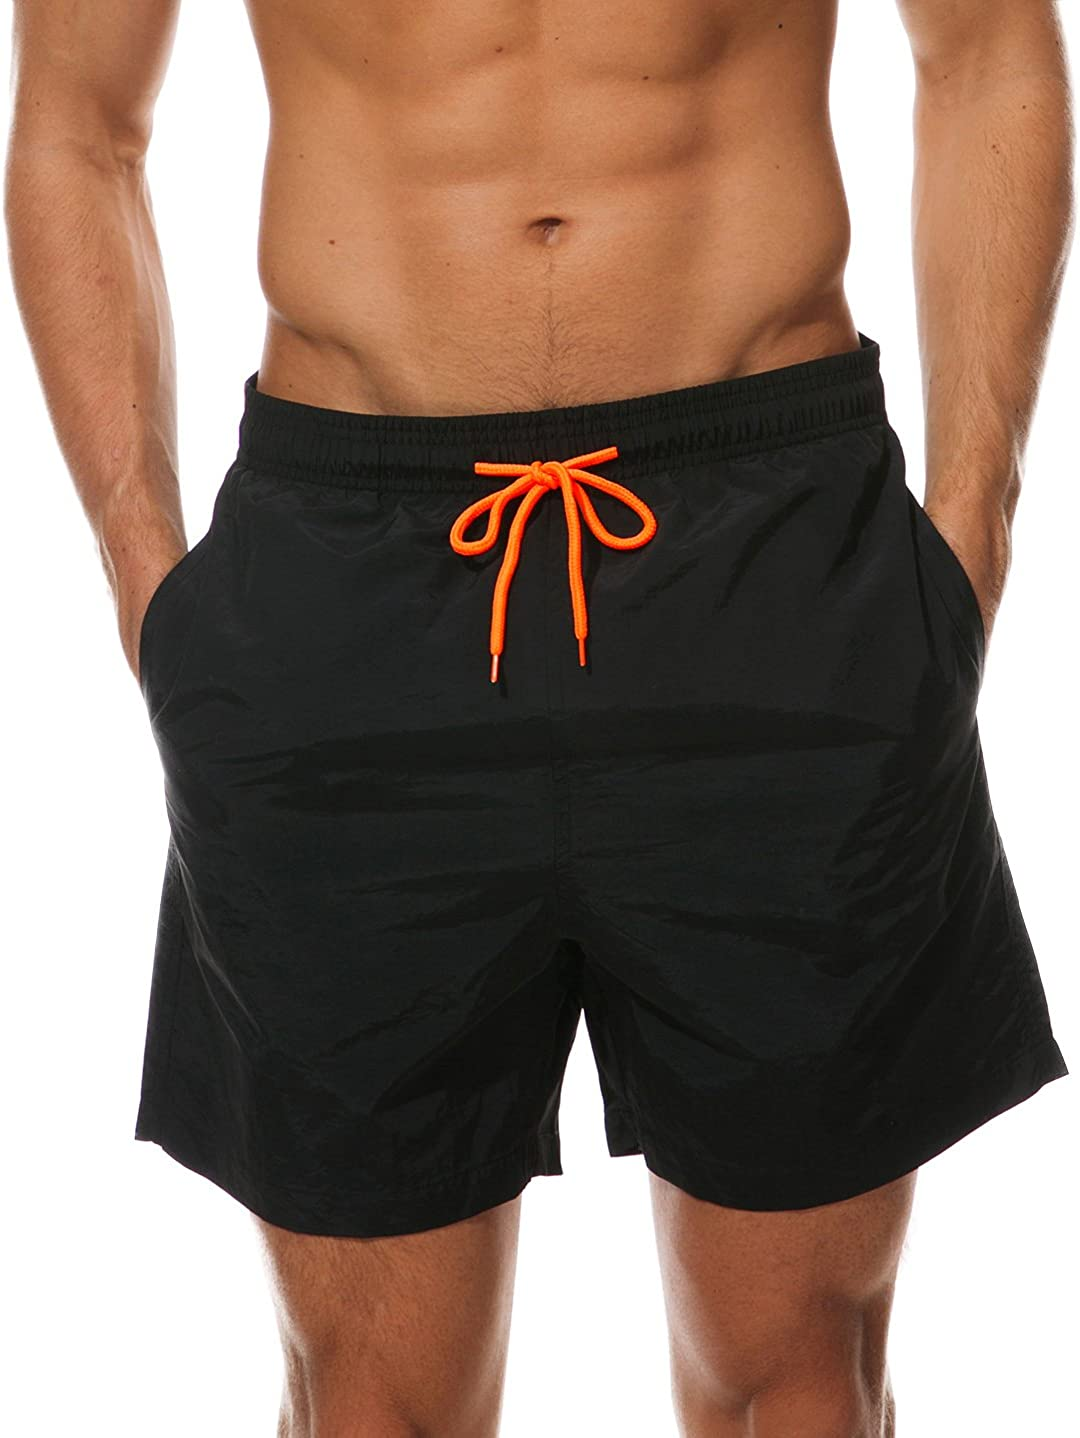 Other1 Men Swim Trunks Quick Dry Surfing Beach Shorts Elastic Waist Swimwear